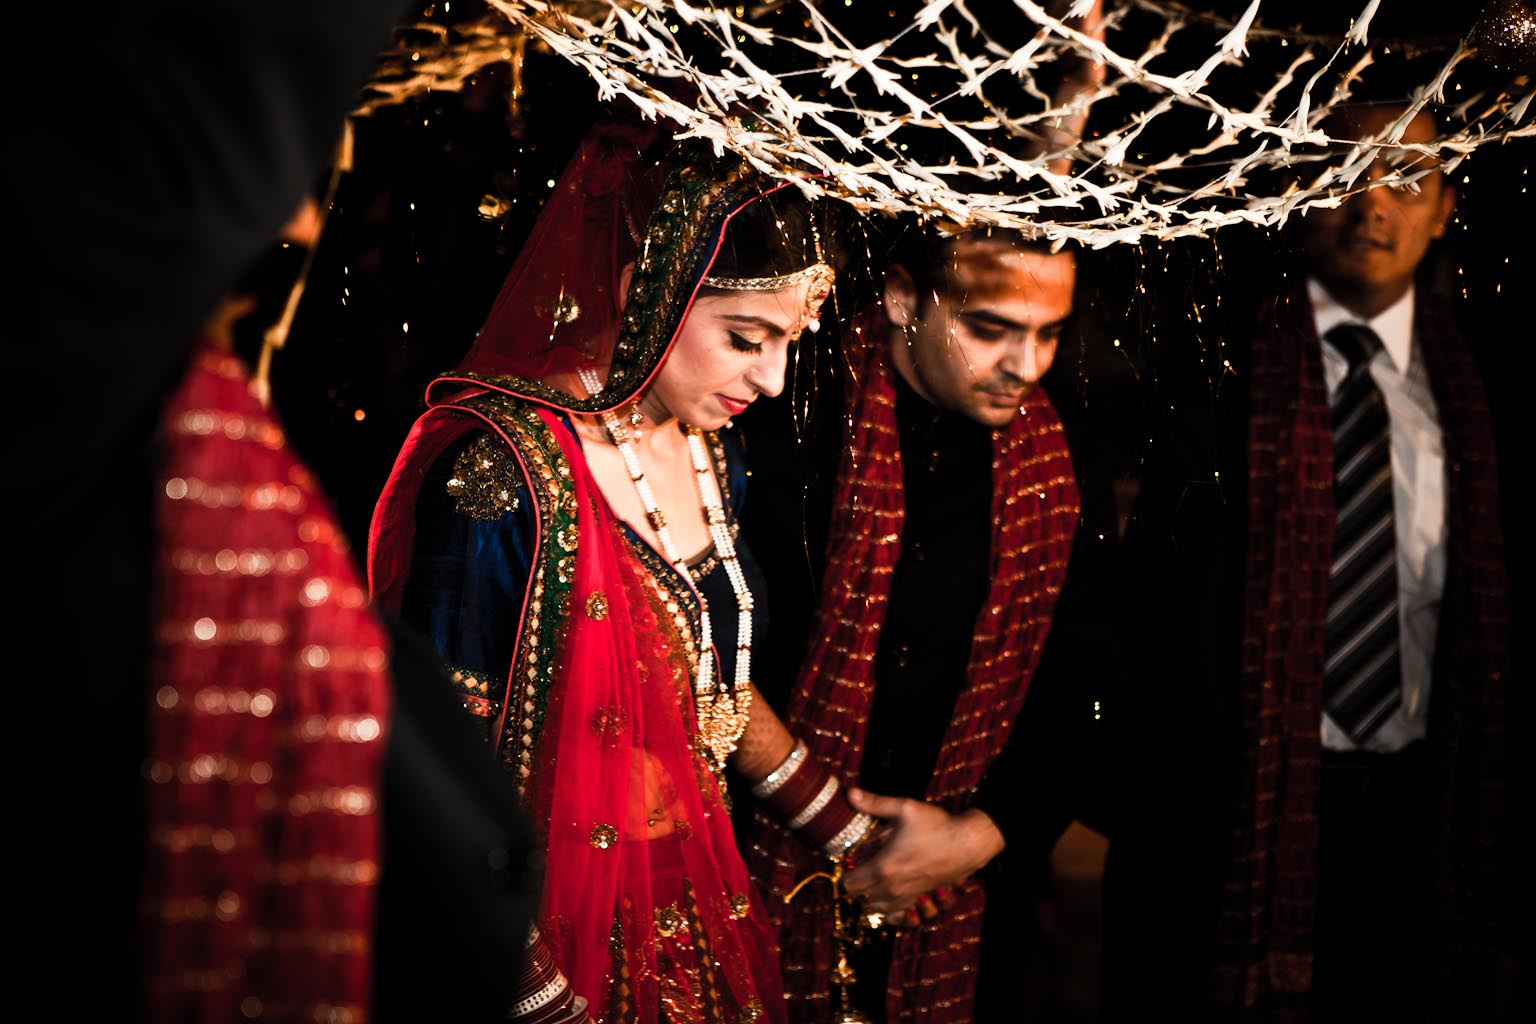 Bride Entrance - Delhi Goregaon Indian wedding - Chhavi Saurabh - Rahul Rana Photography